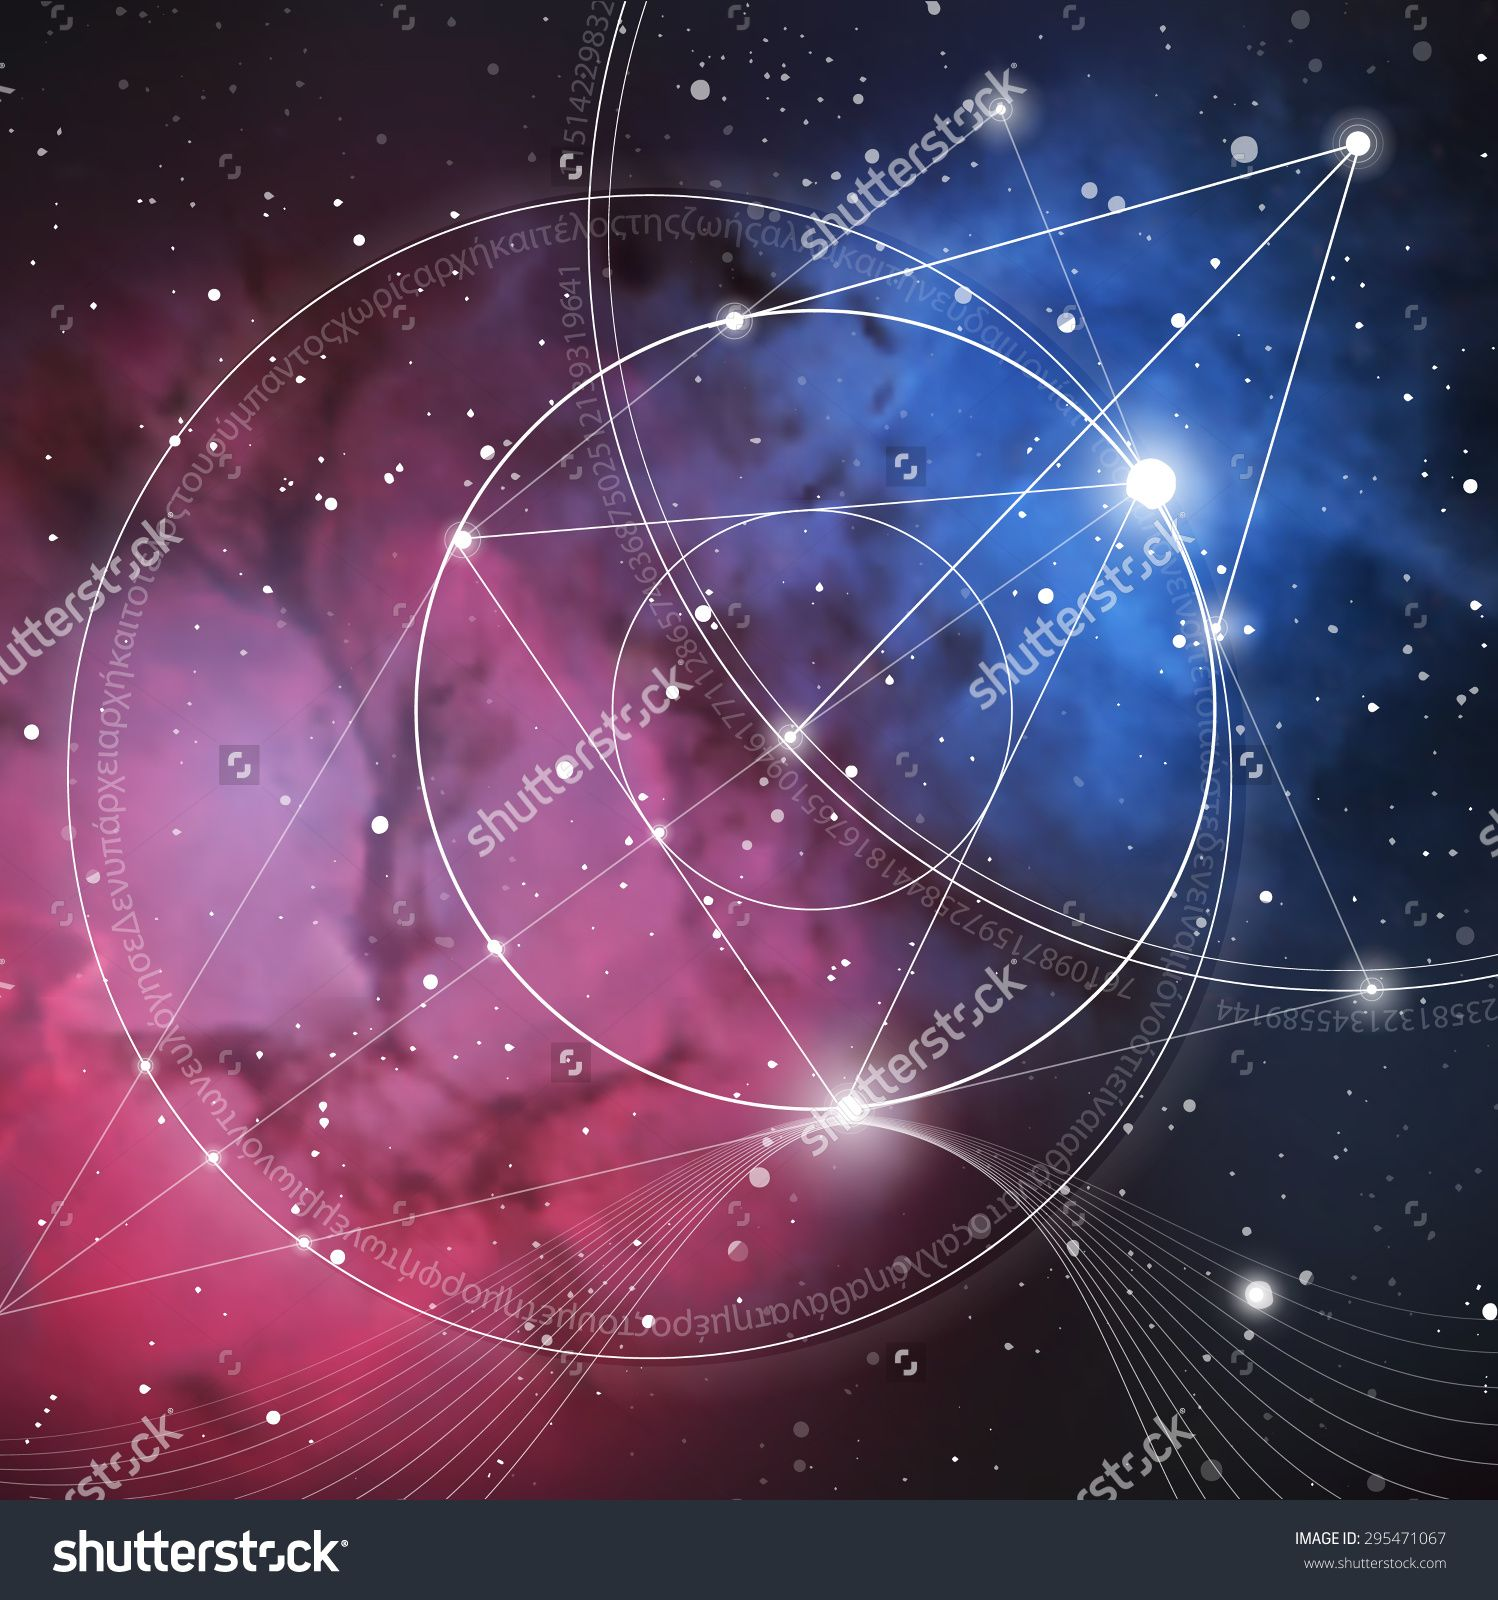 Mathematical symbols and digits in space the formula of nature mathematical symbols and digits in space the formula of nature biocorpaavc